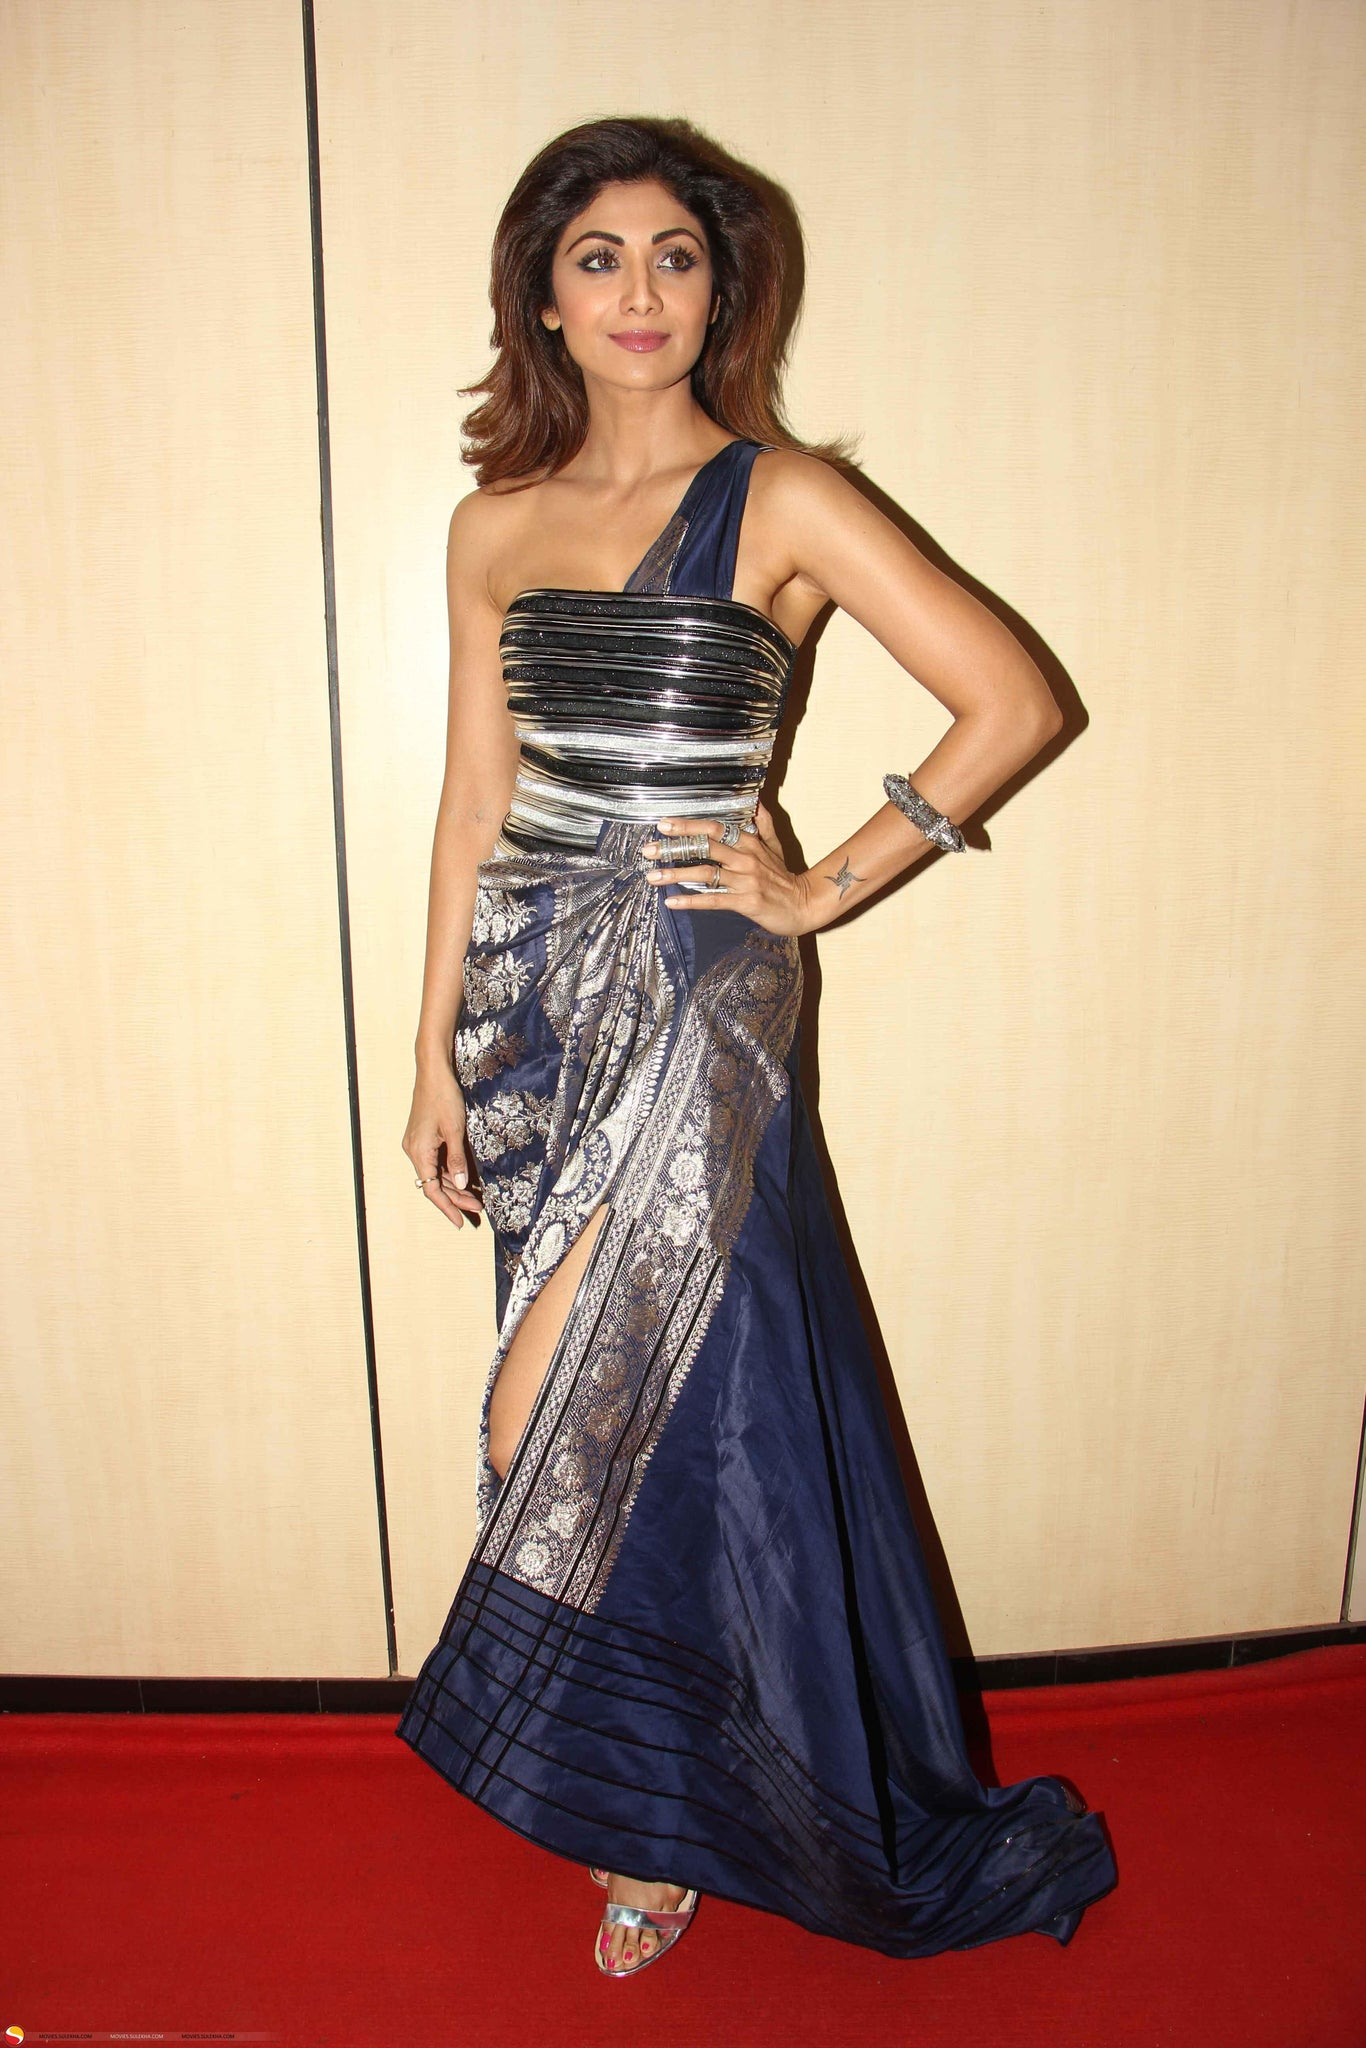 Shilpa Shetty Looked Classy In Banarasi Saree Gown By Amit Agarwal ...